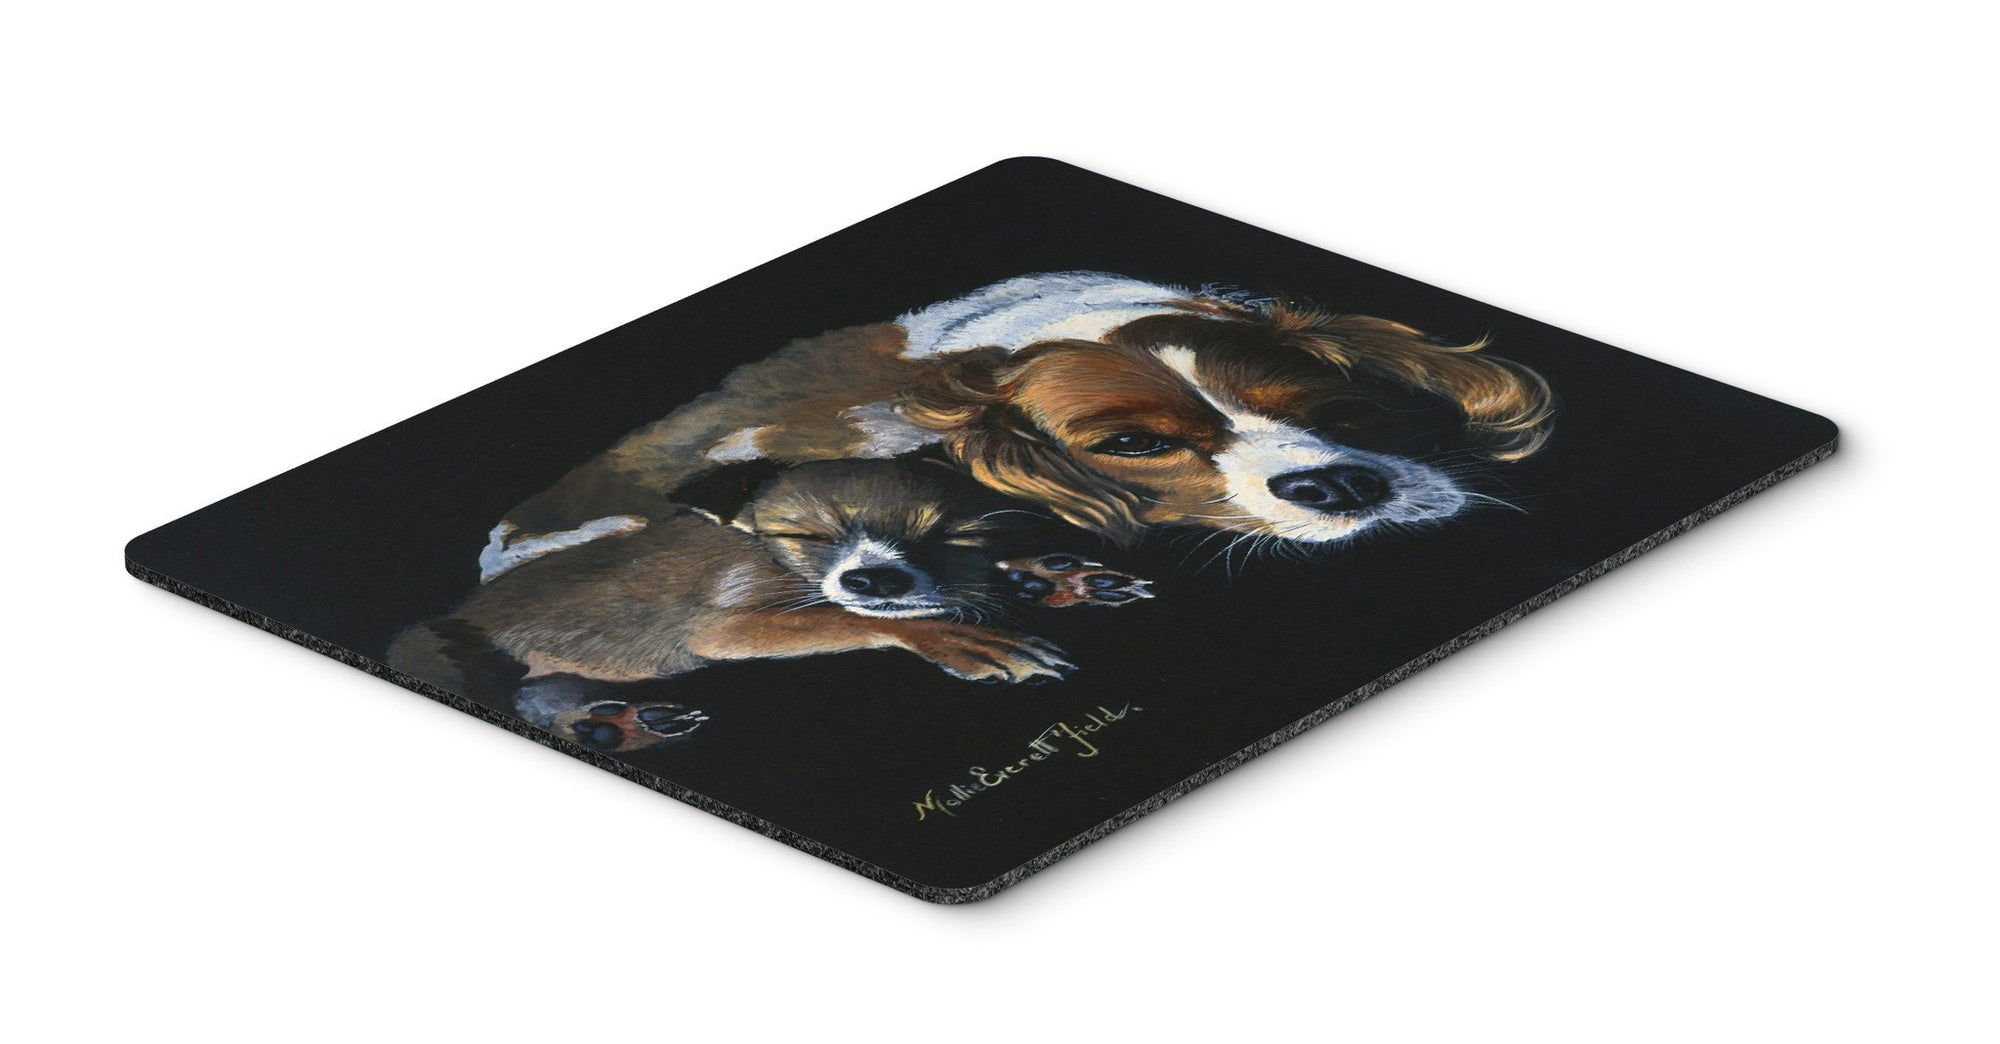 Cozy Pals with Cavalier Spaniel Mouse Pad, Hot Pad or Trivet FMF0022MP - the-store.com